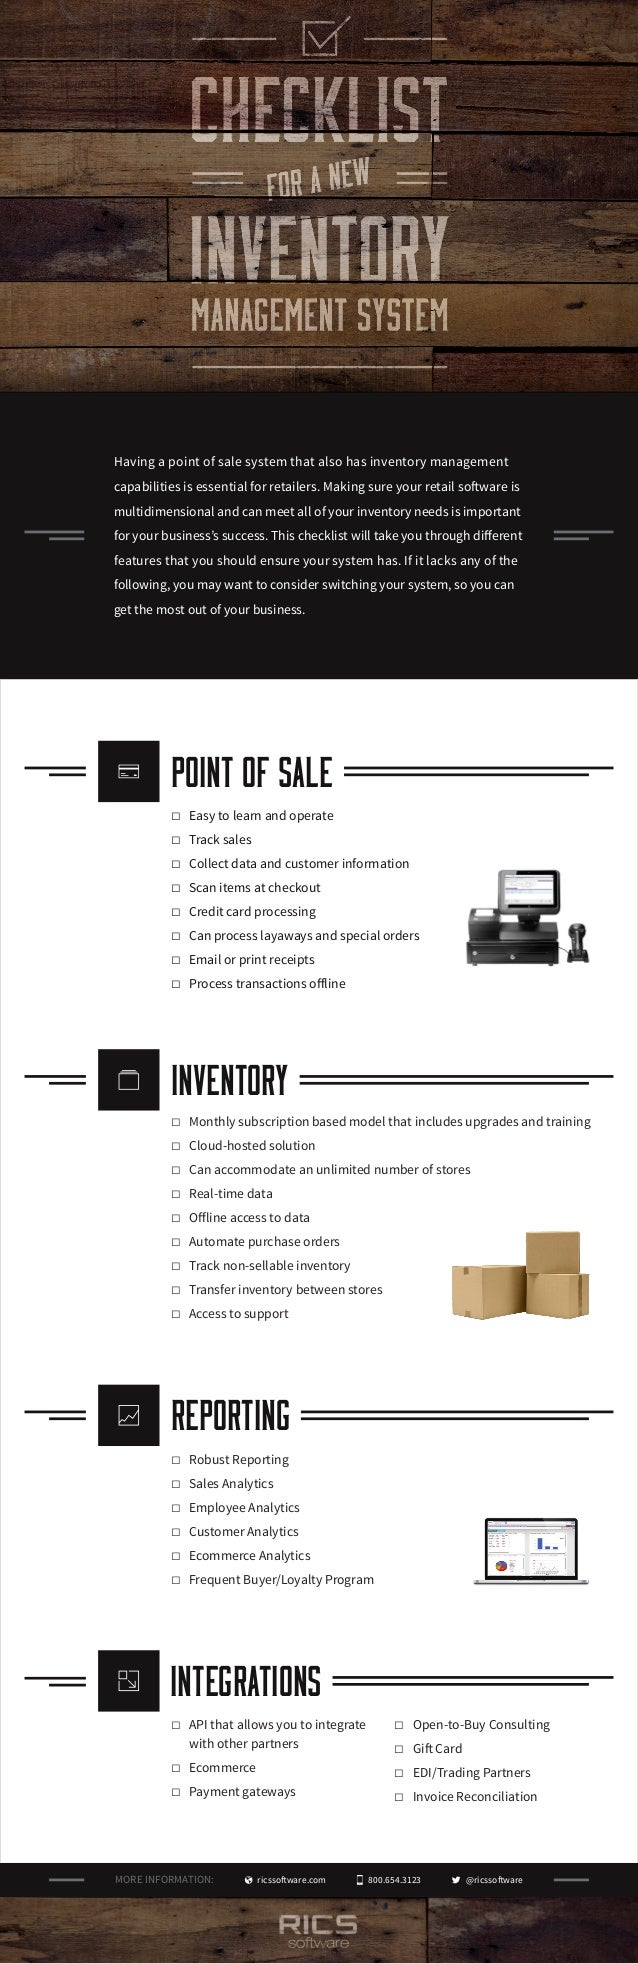 ricssoftware.com 800.654.3123 Having a point of sale system that also has inventory management capabilities is essential f...